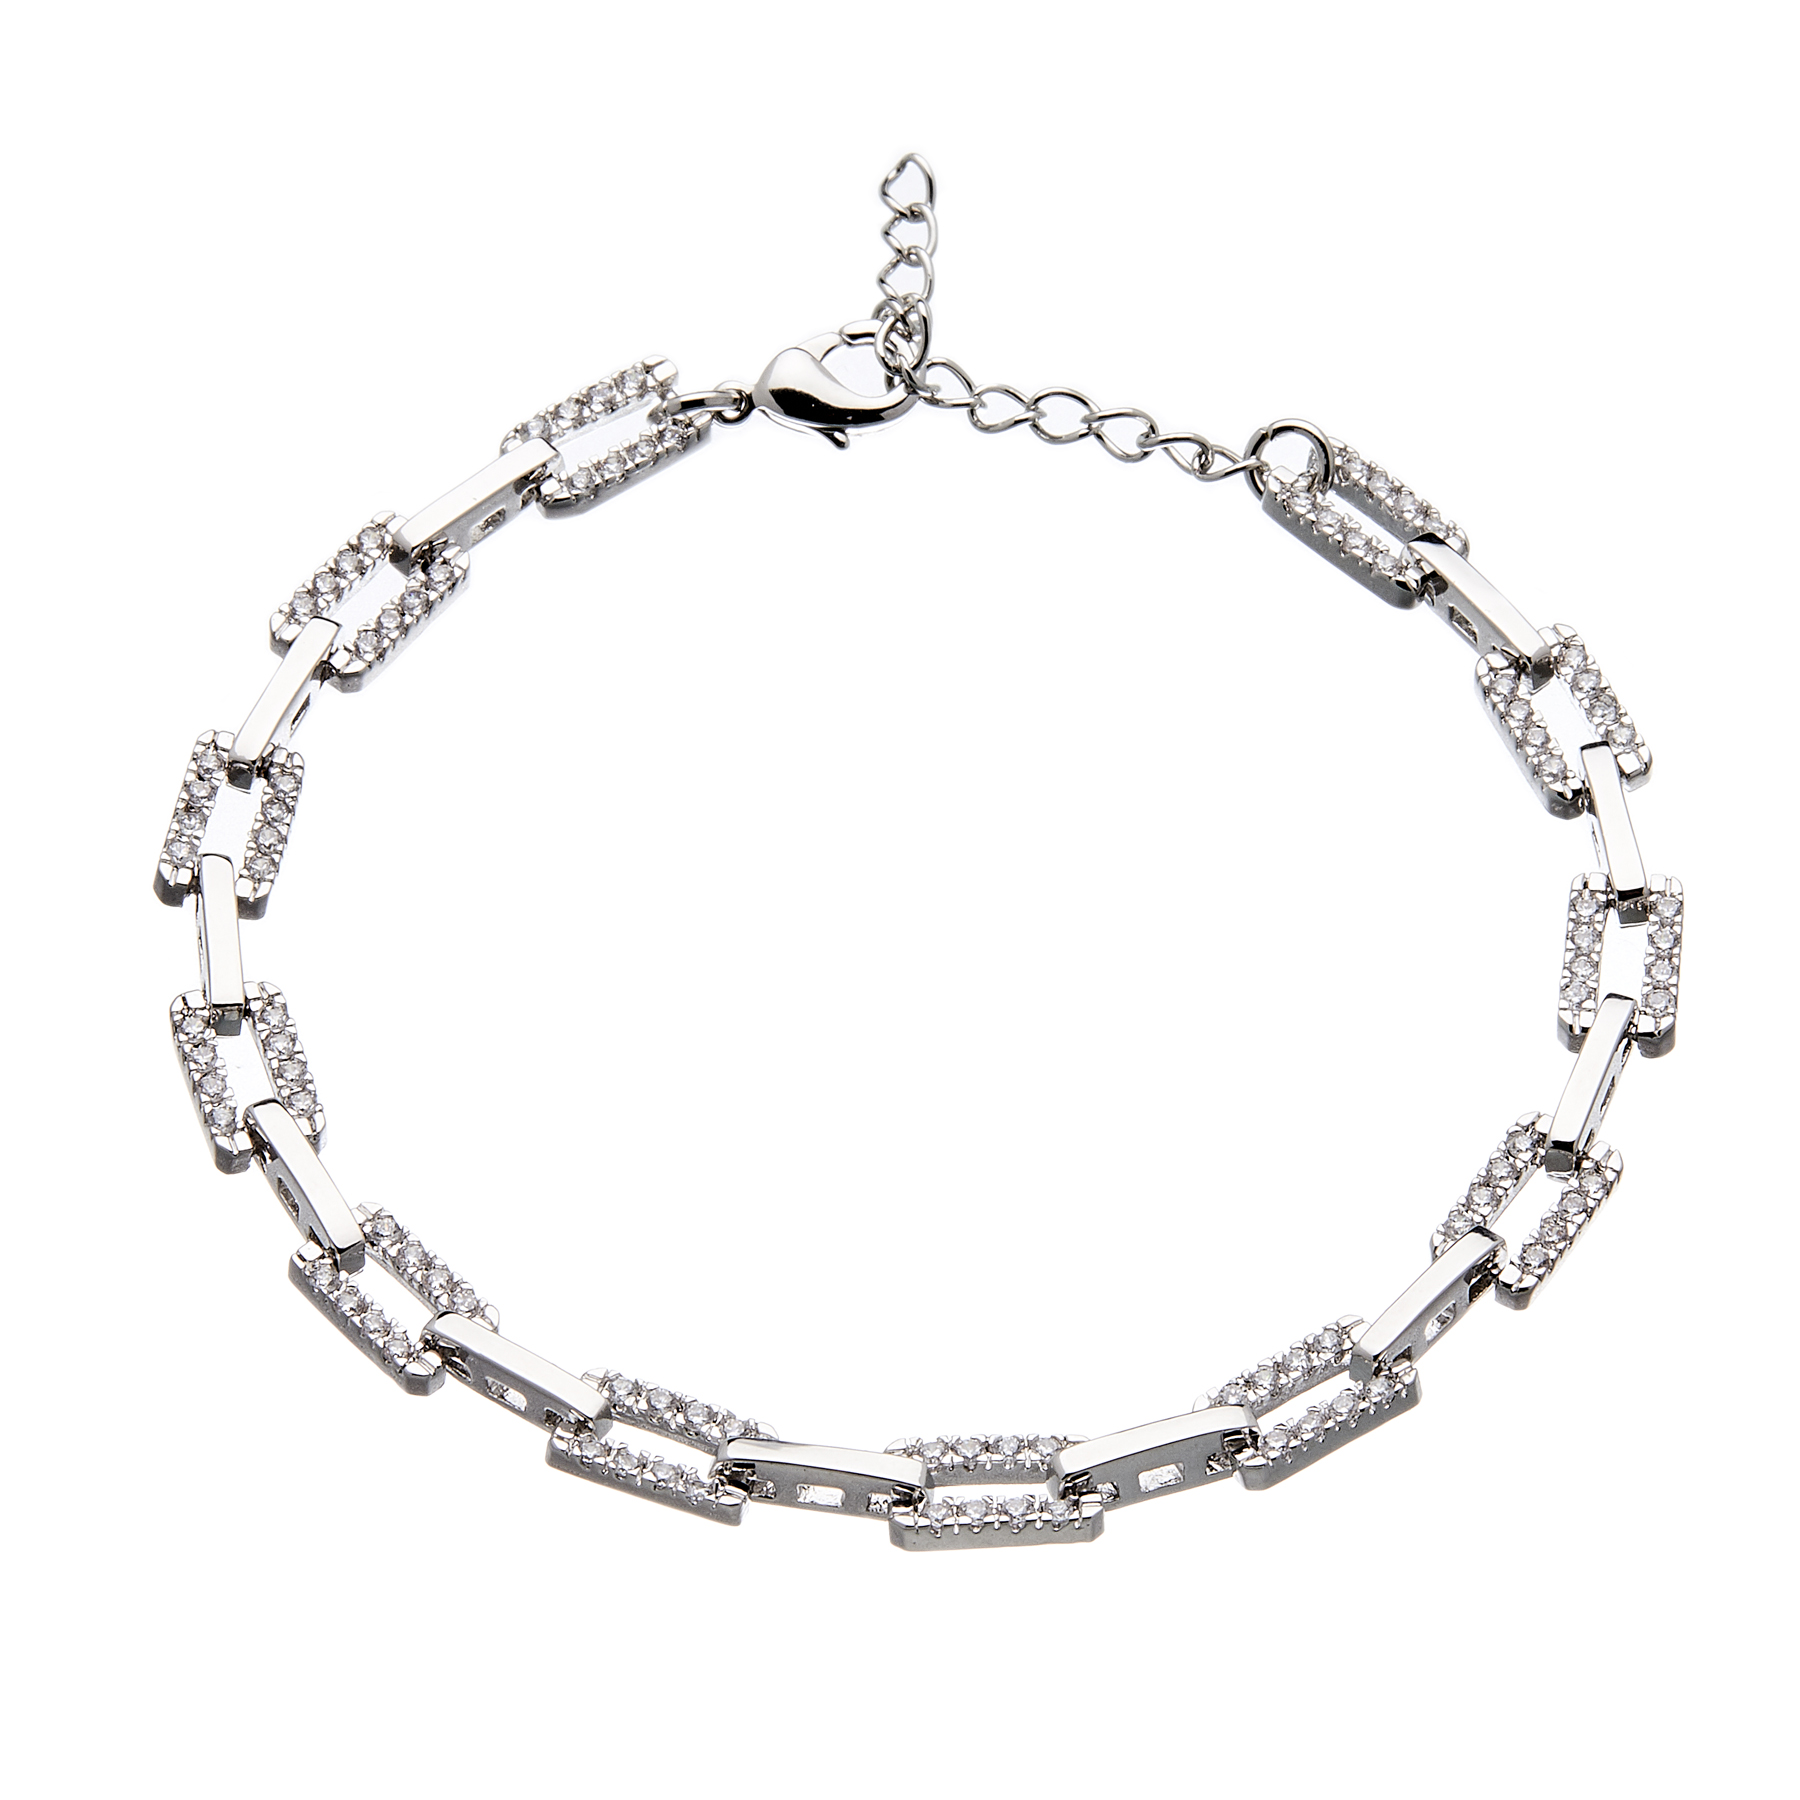 Silver linked bracelet with clear crystals - Navit